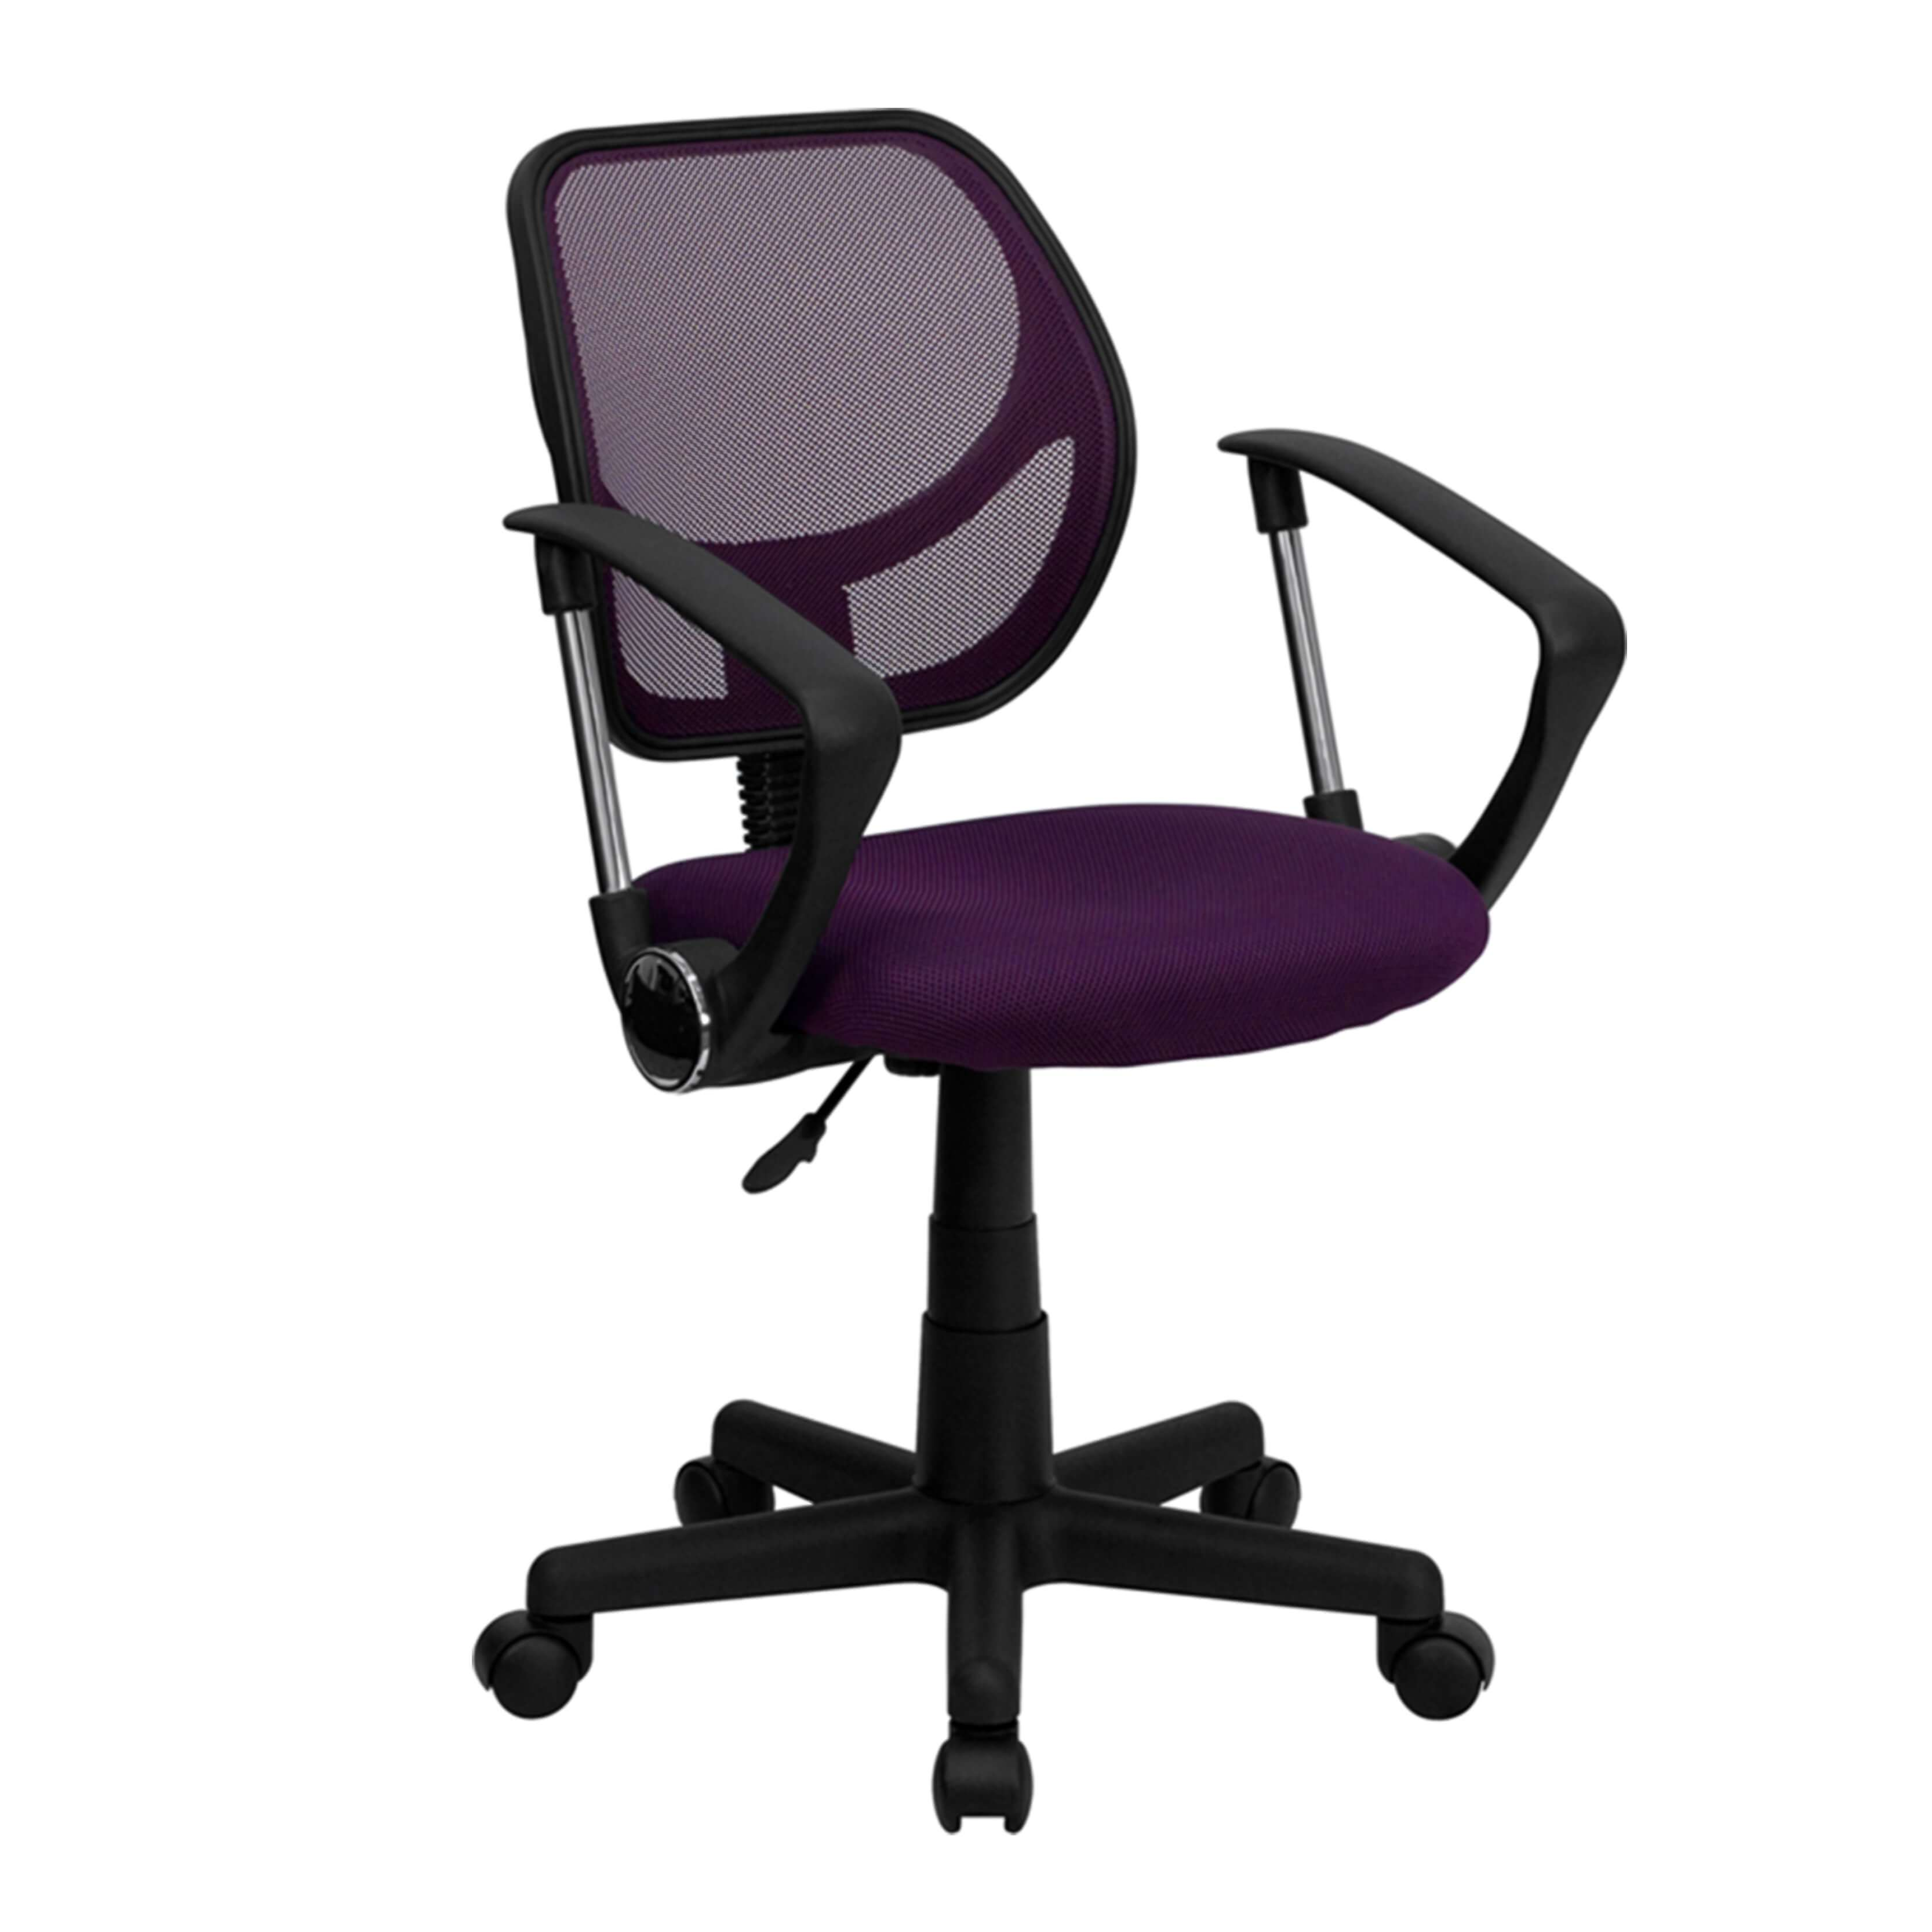 colorful office chairs hanging chair clearance aurora petite